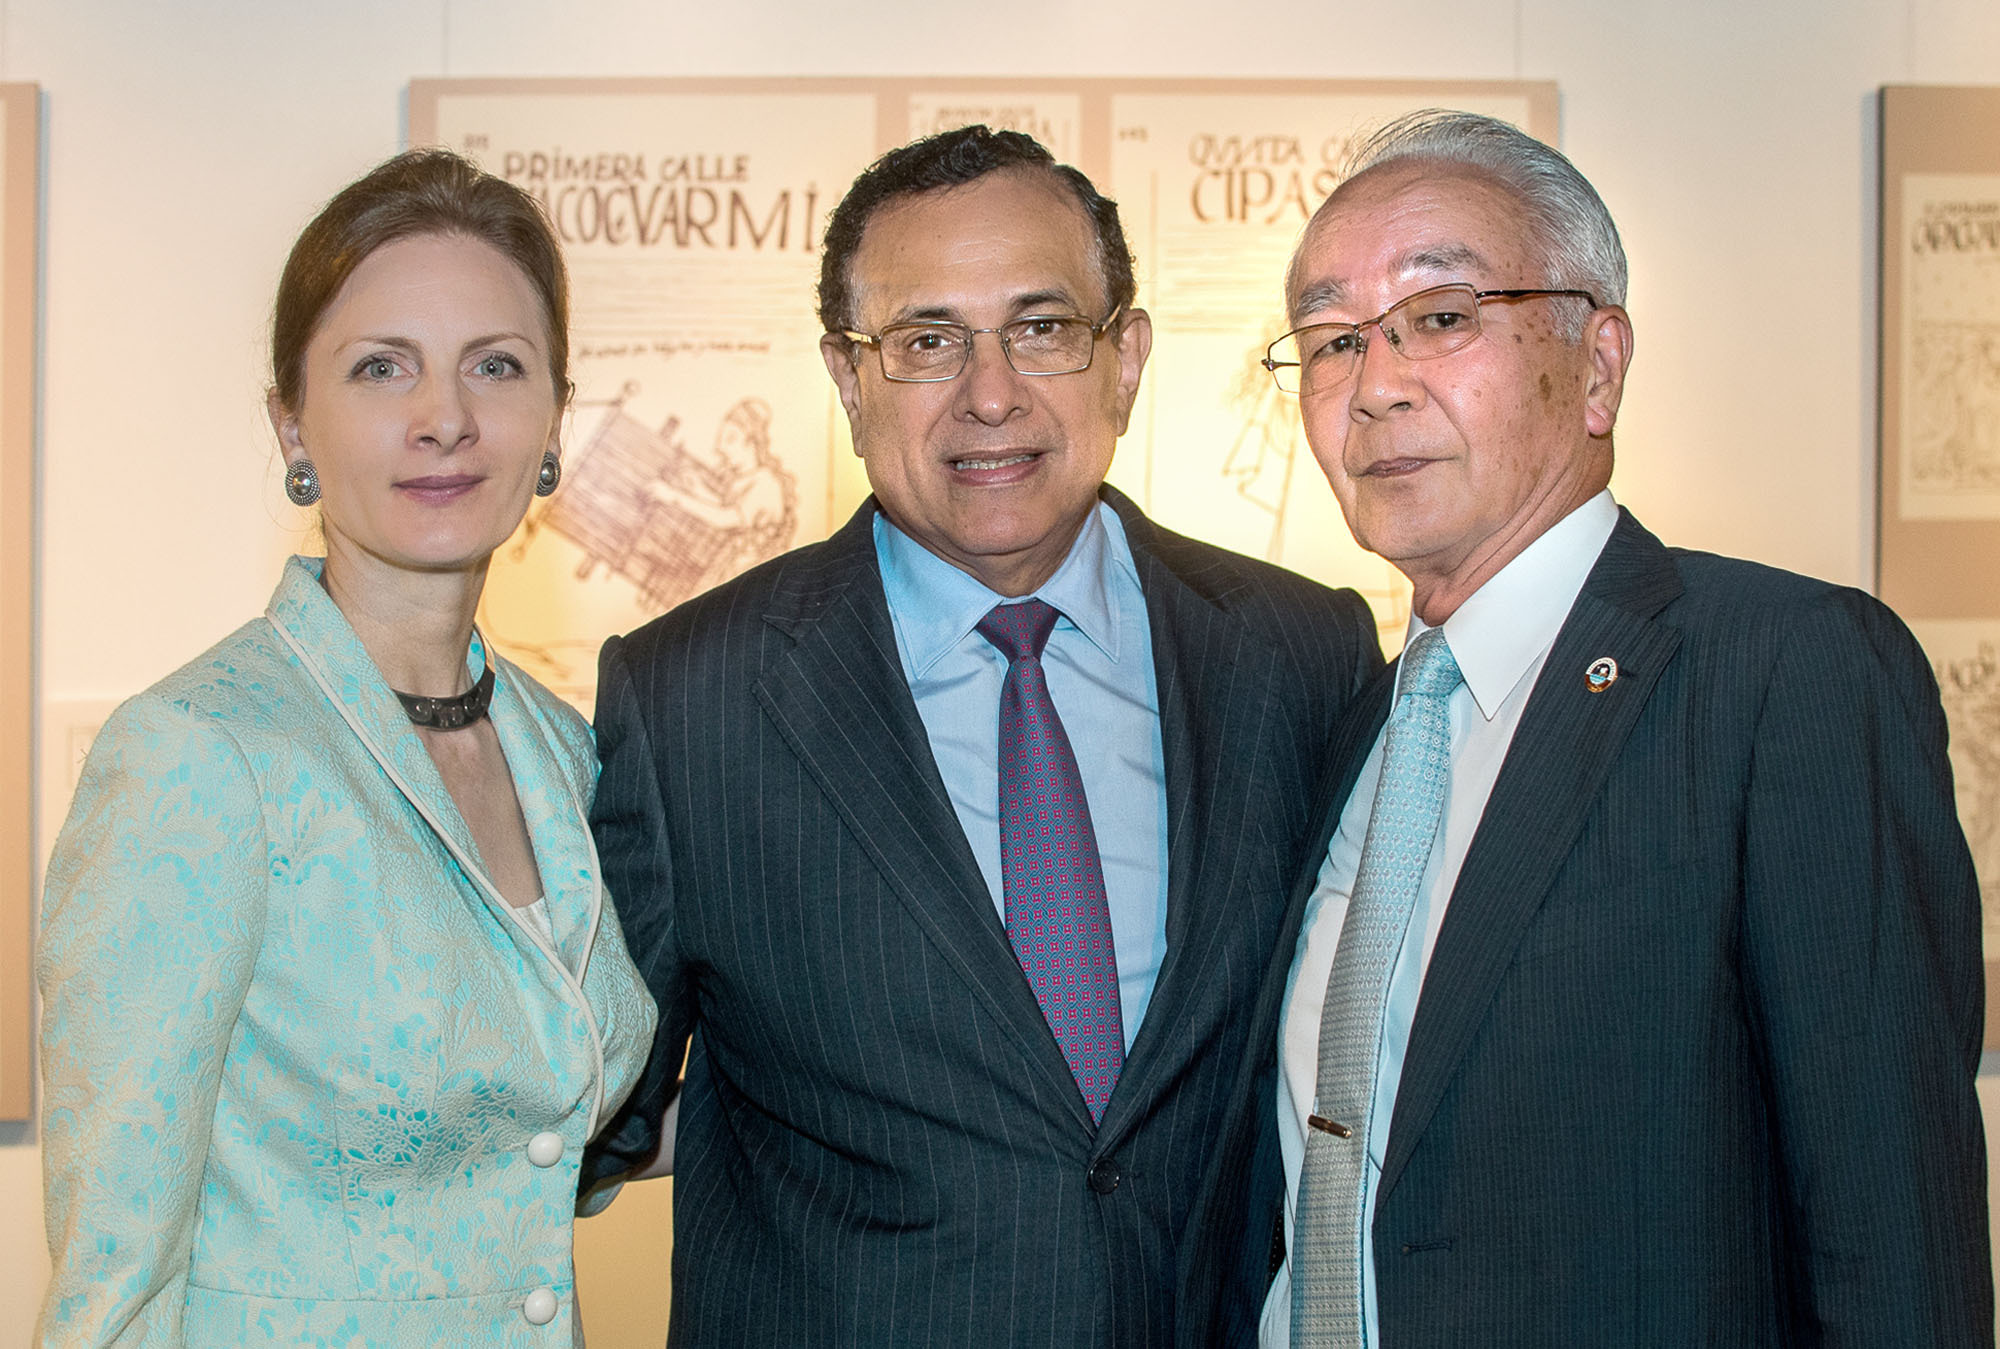 Peruvian Ambassador Elard Escala (center) and his wife Cristina pose with guest speaker Hidefuji Someda, professor emeritus of Osaka University, during the opening of an exhibition of author Guaman Poma de Ayala at Institute Cervantes Tokyo on July 7. The exhibition runs until Aug. 23. | PERUVIAN EMBASSY